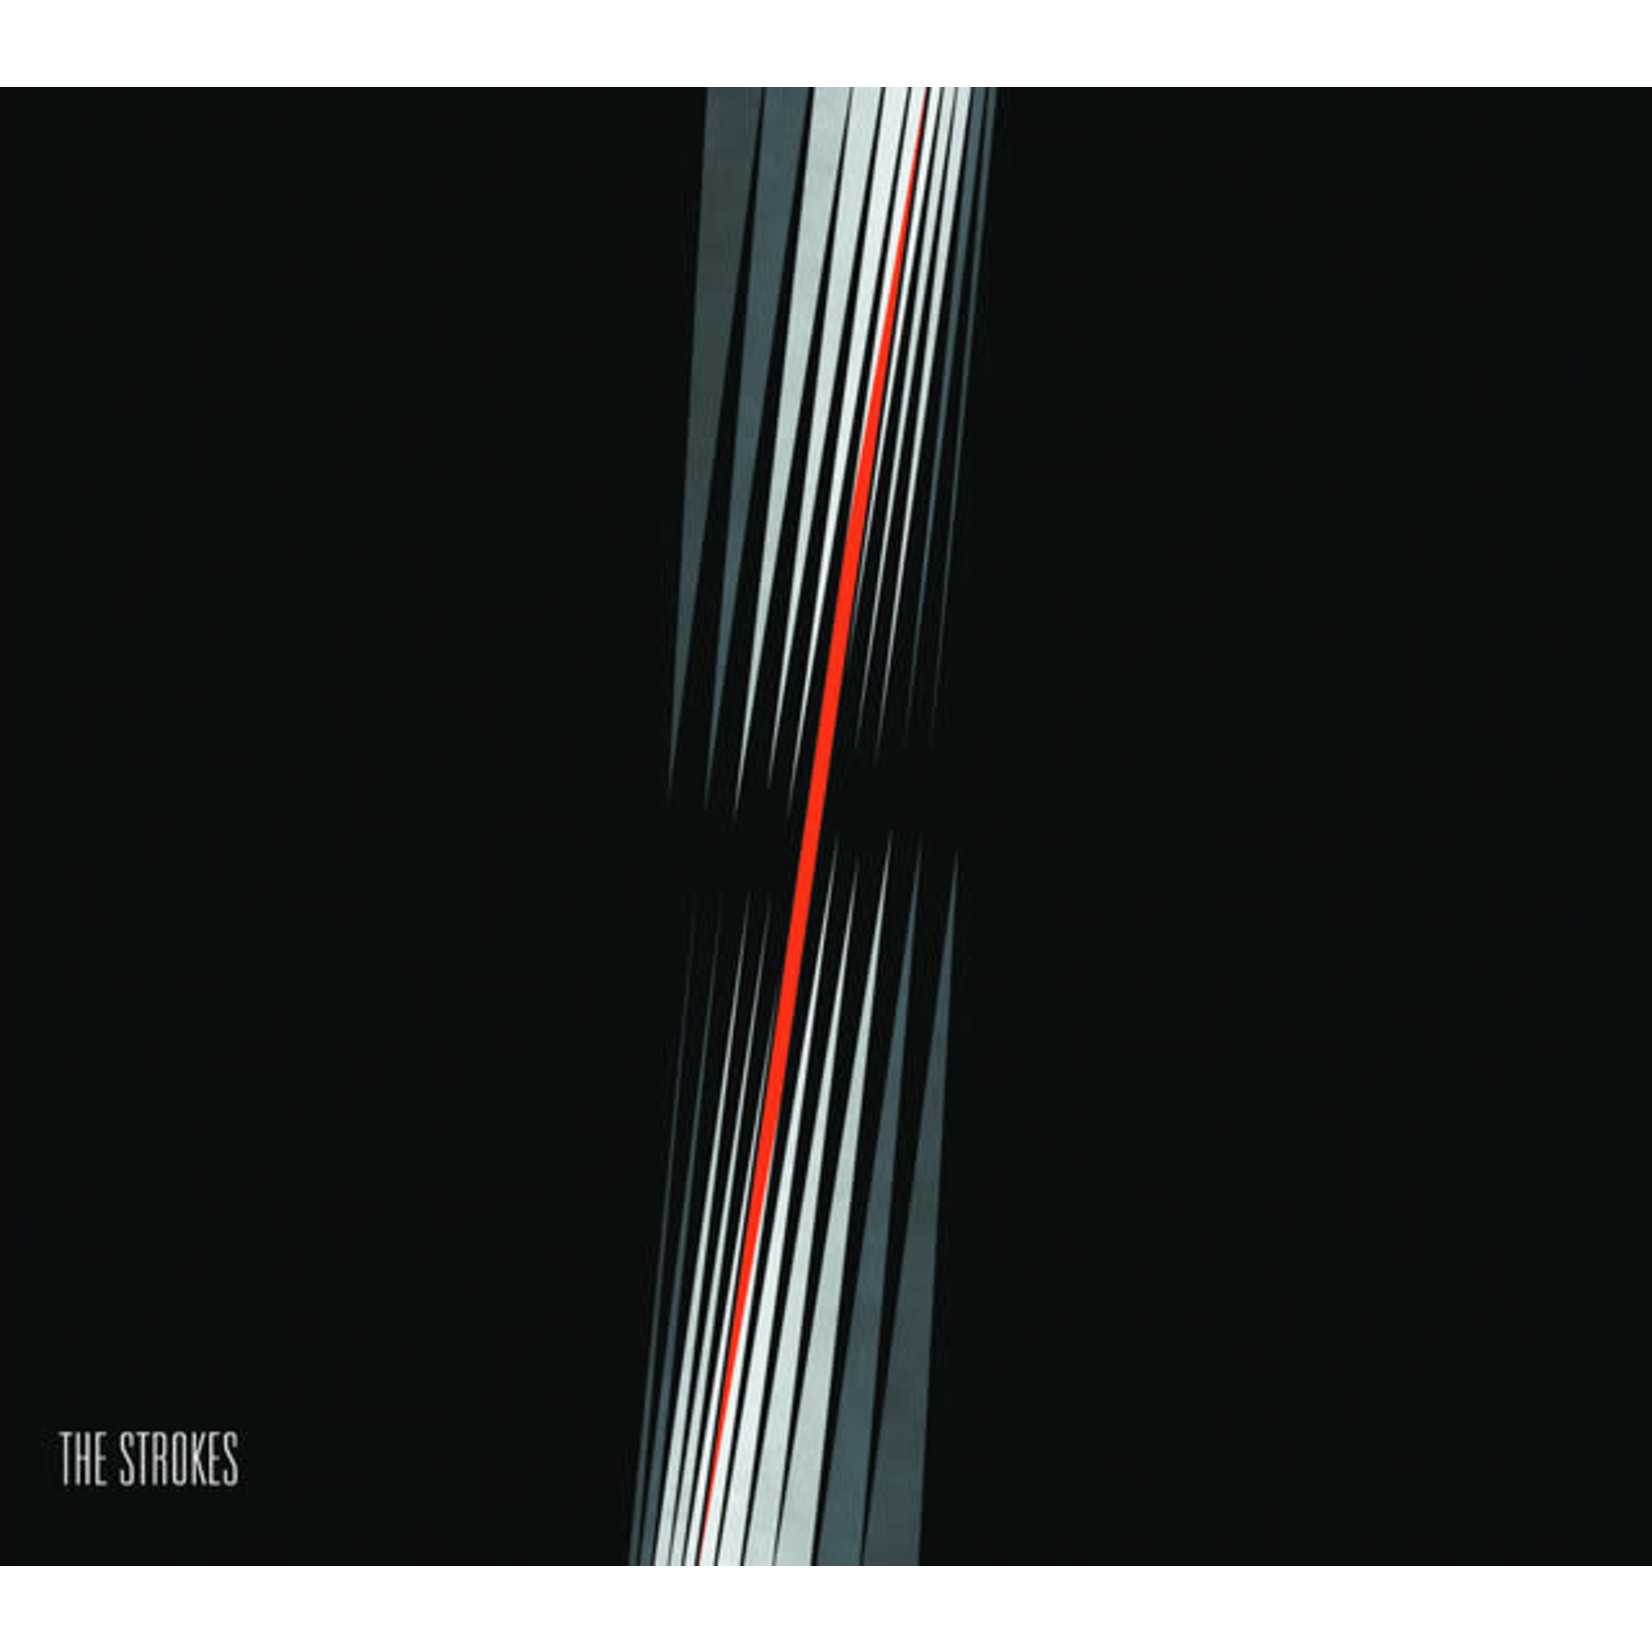 Vinyl The Strokes - First Impressions